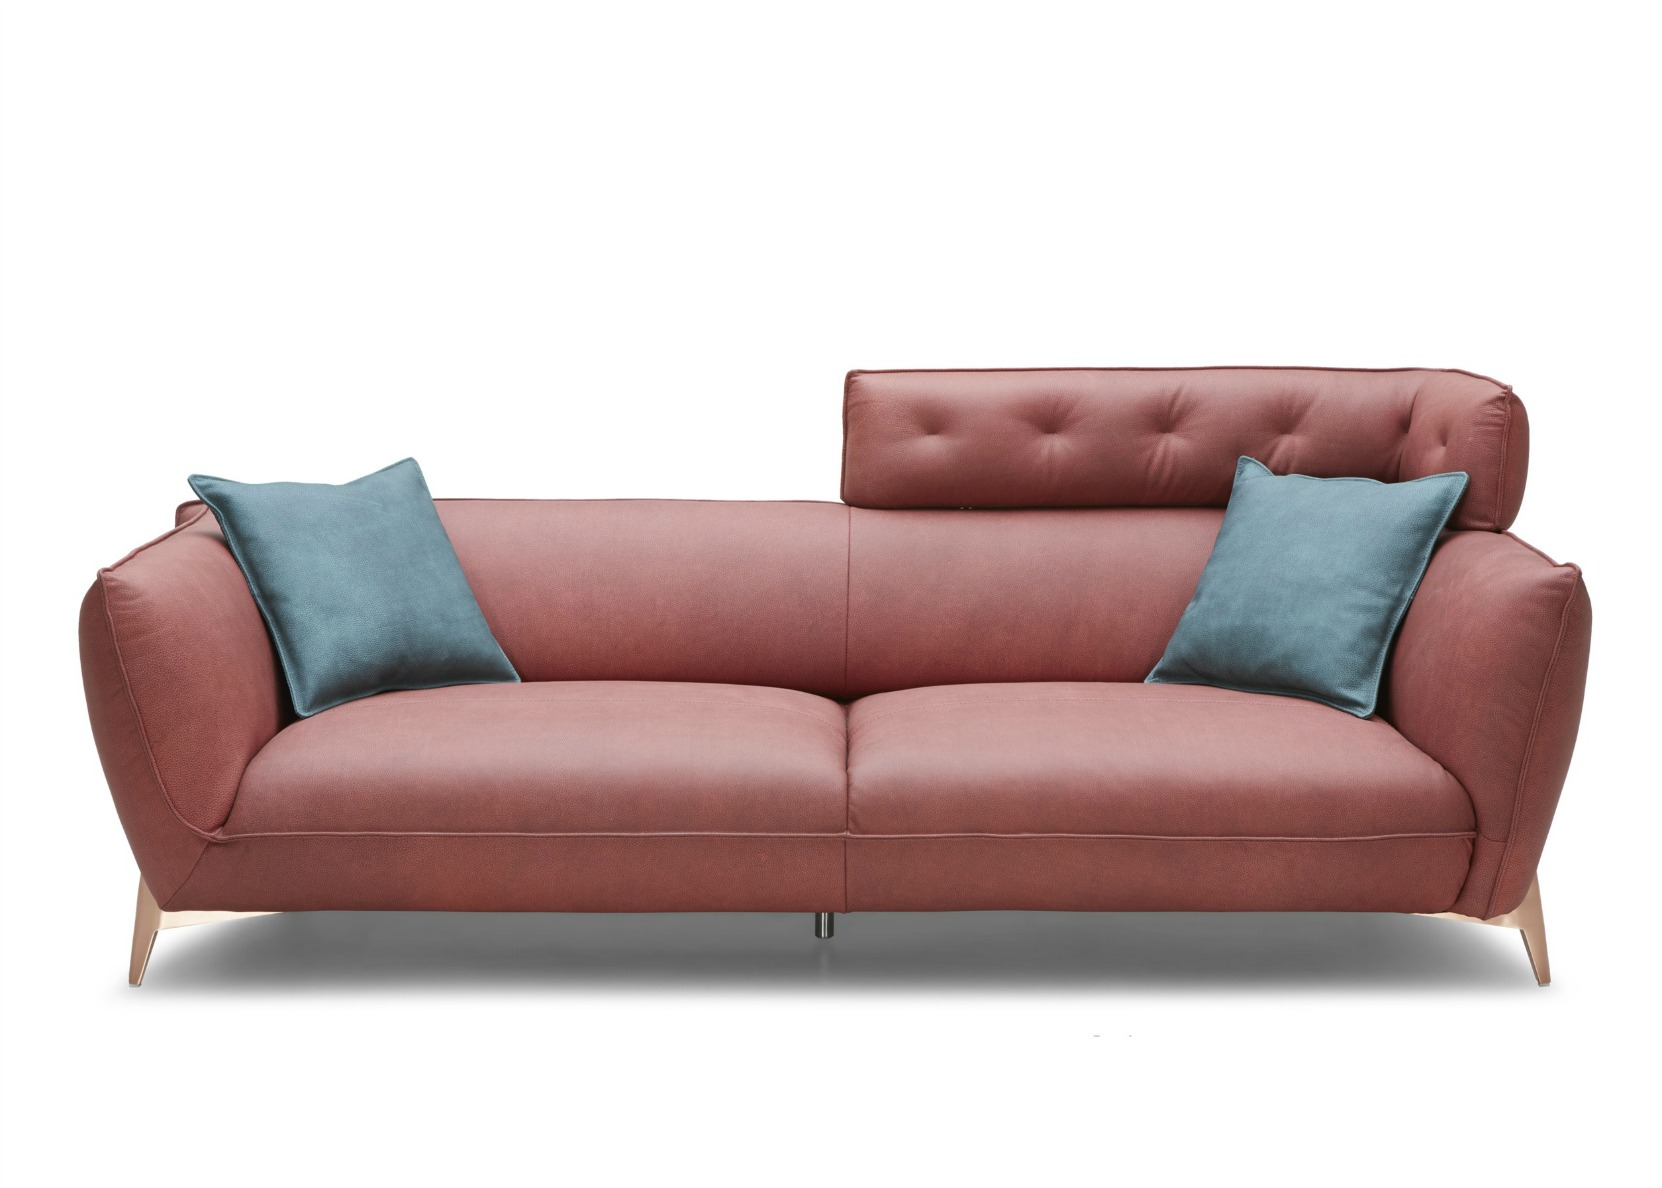 sofa exporters india living sofas sl leather in chennai resnooze